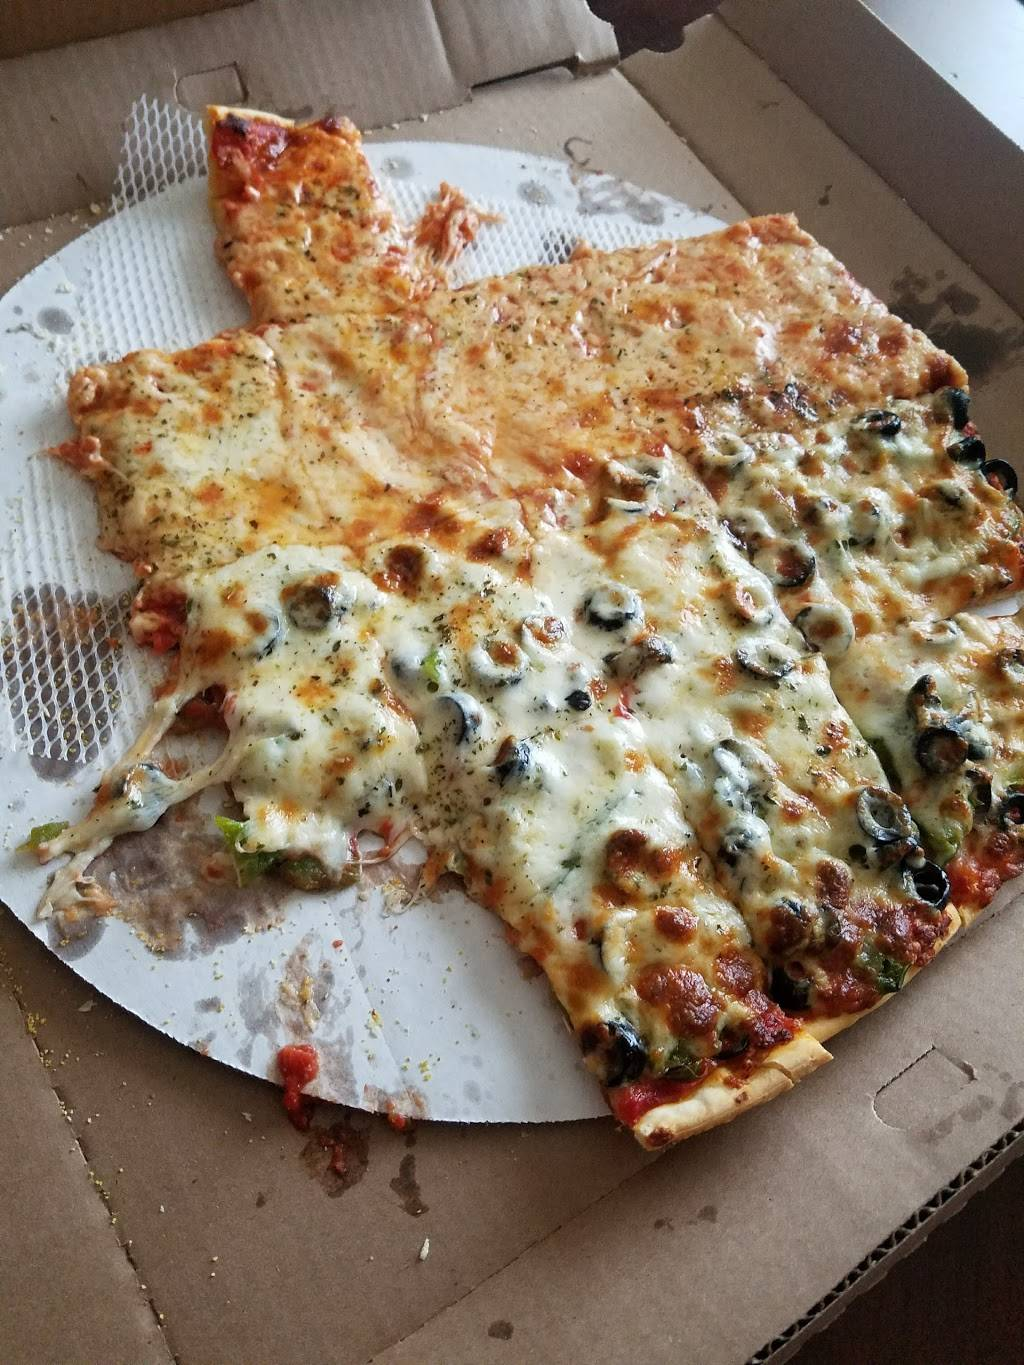 Fat Rickys   meal delivery   16703 S Harlem Ave, Tinley Park, IL 60477, USA   7088026900 OR +1 708-802-6900